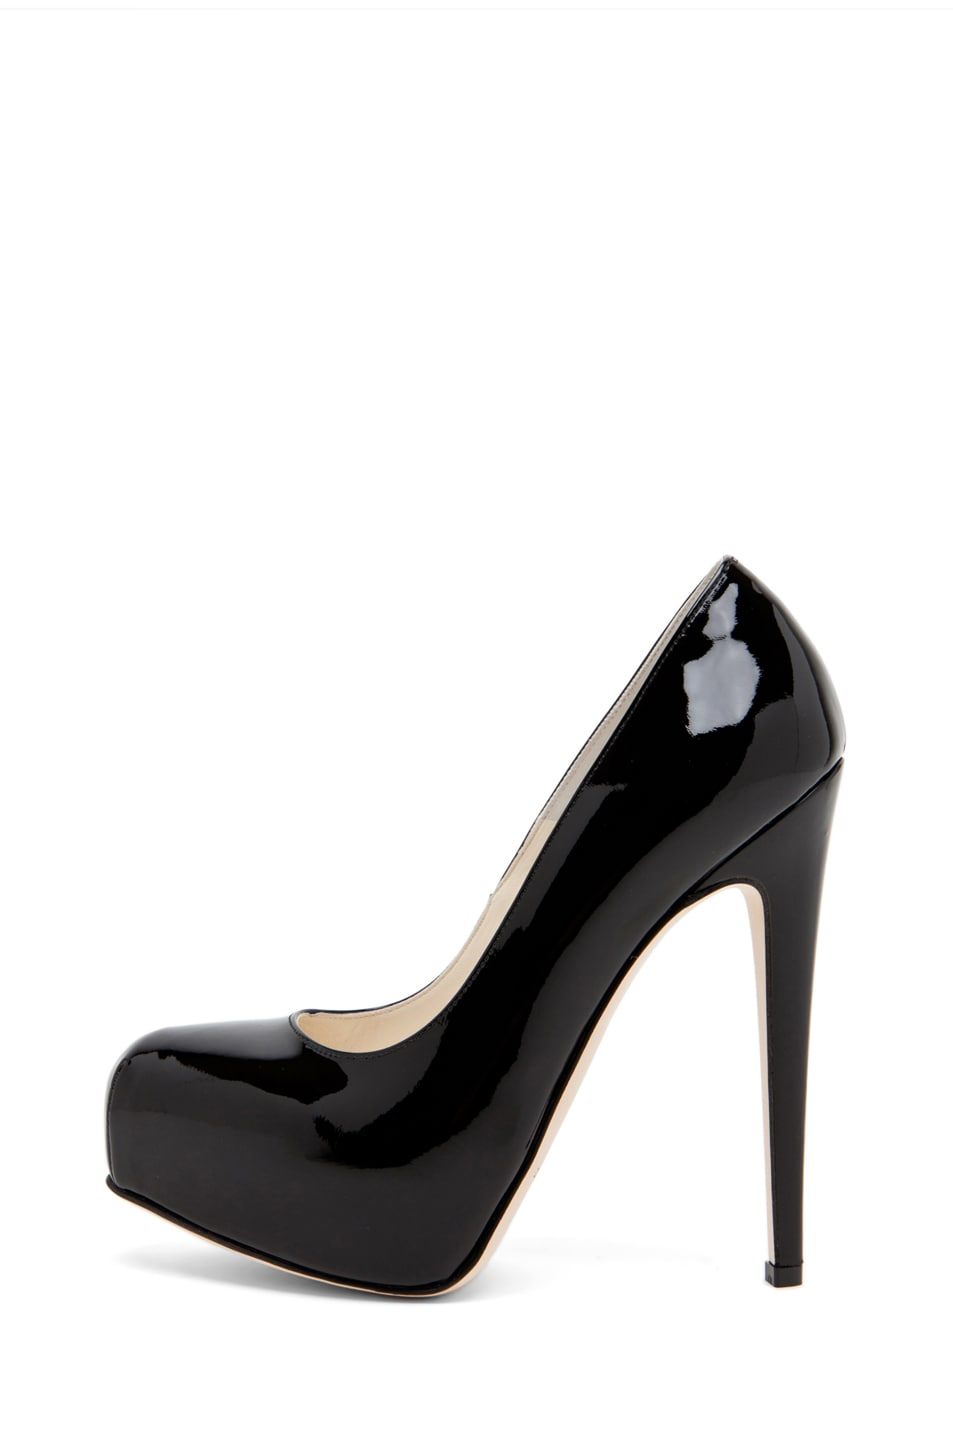 Image 2 of Brian Atwood Maniac Pump in Black